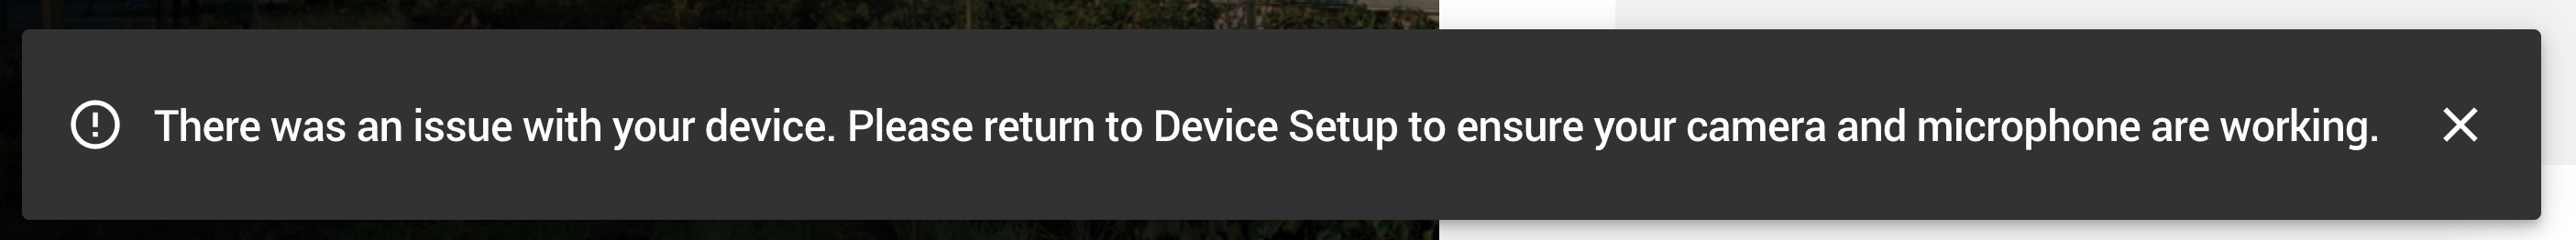 An error on the Check-in page asking applicants to repeat Device Setup due to a device issue.